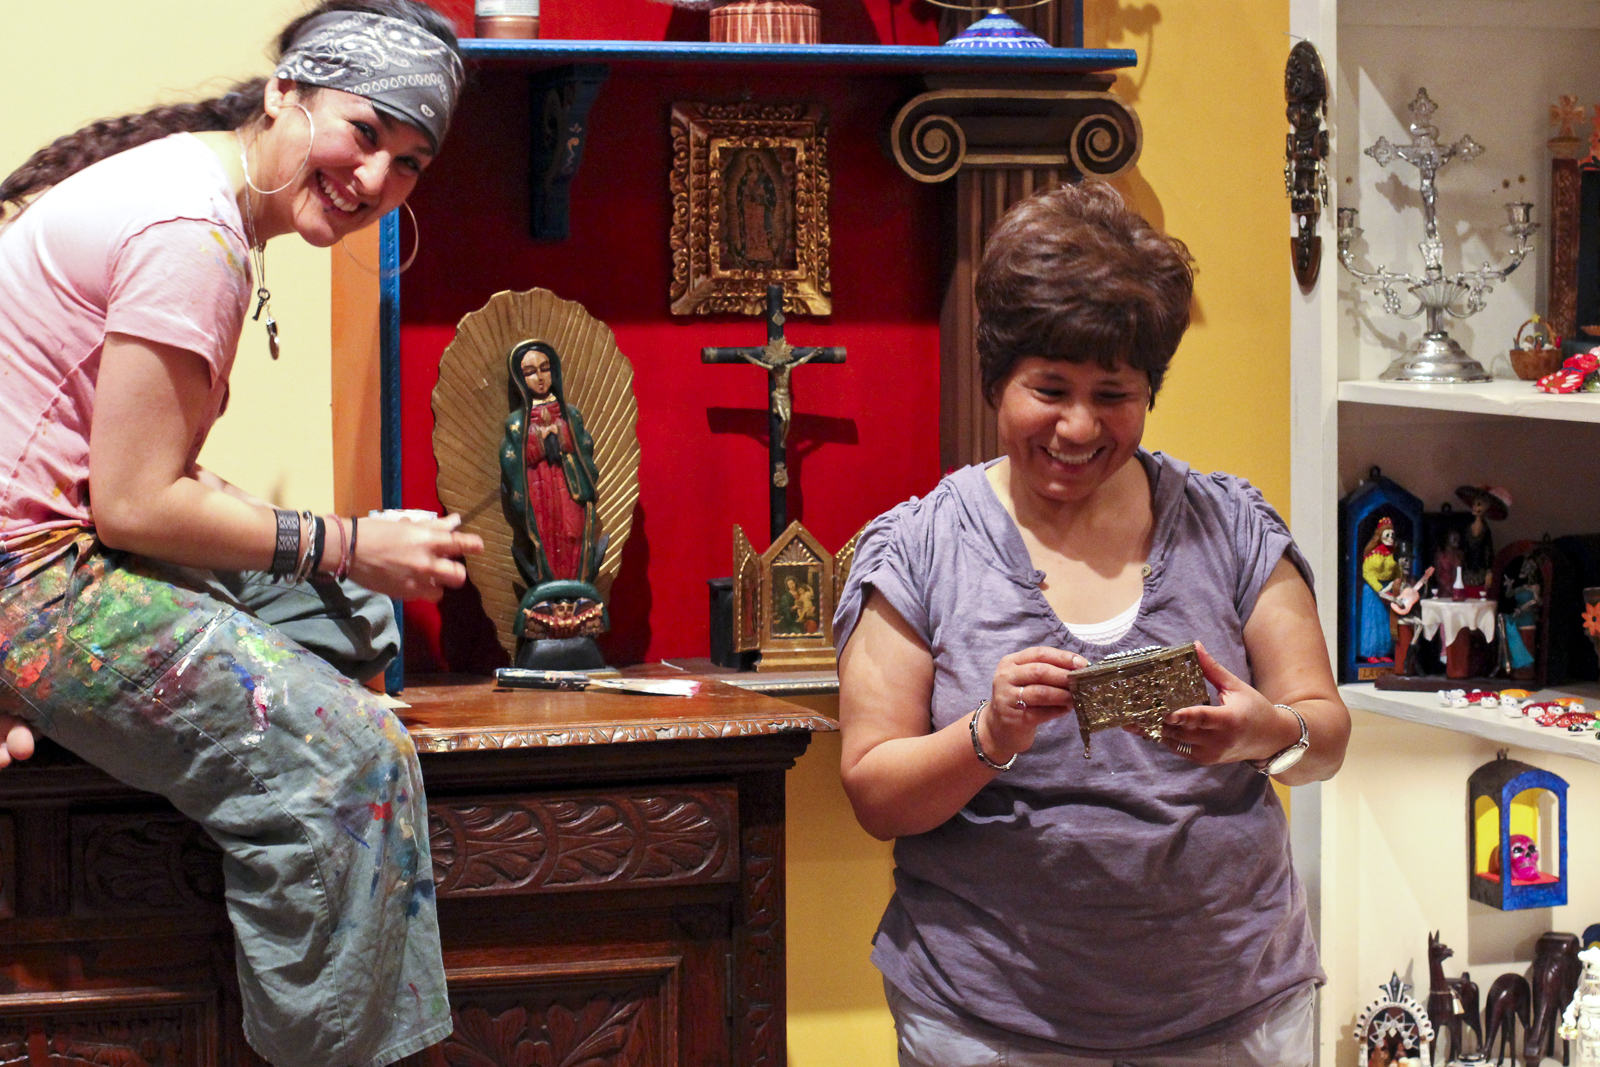 Store owner Denise Gonzales (right) with artist Denisse Ogata.